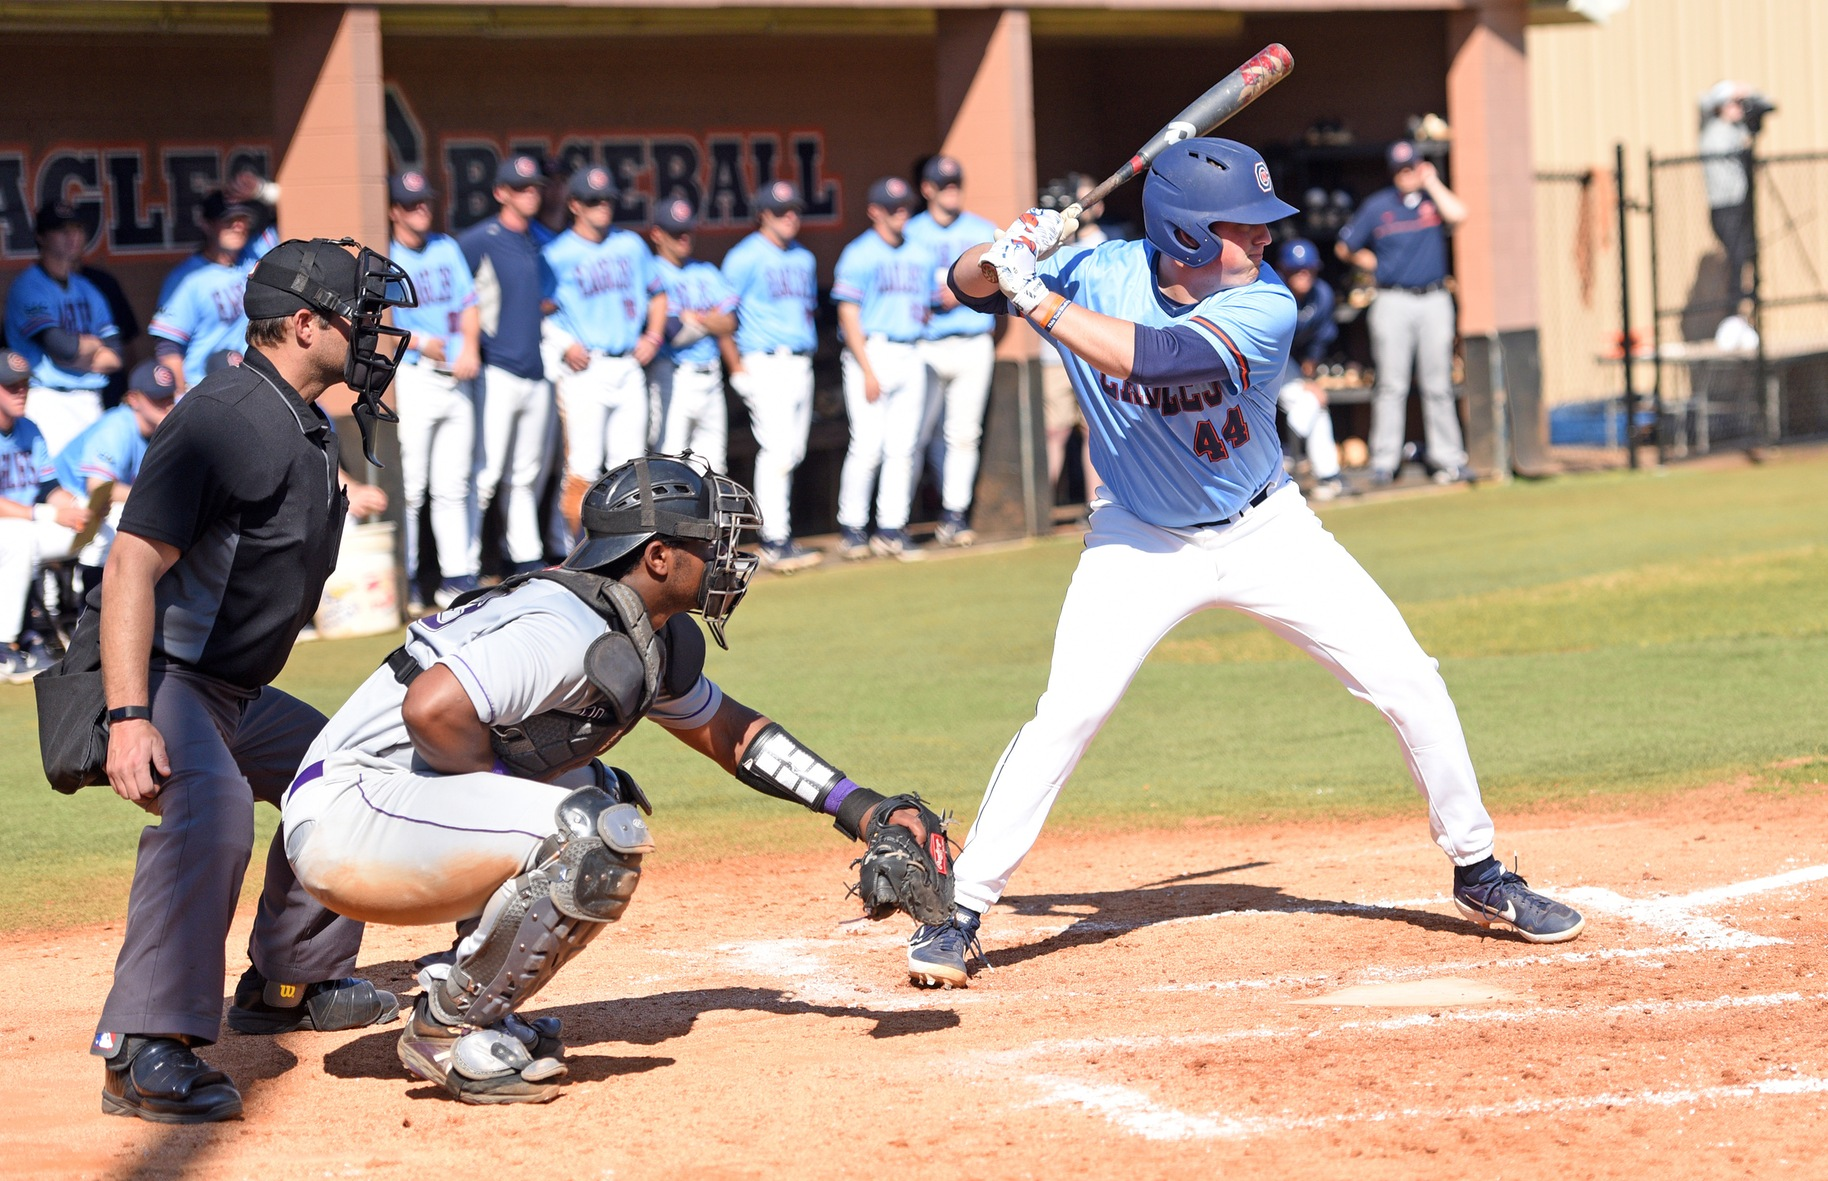 Griffin's group geared up for opening weekend at Limestone